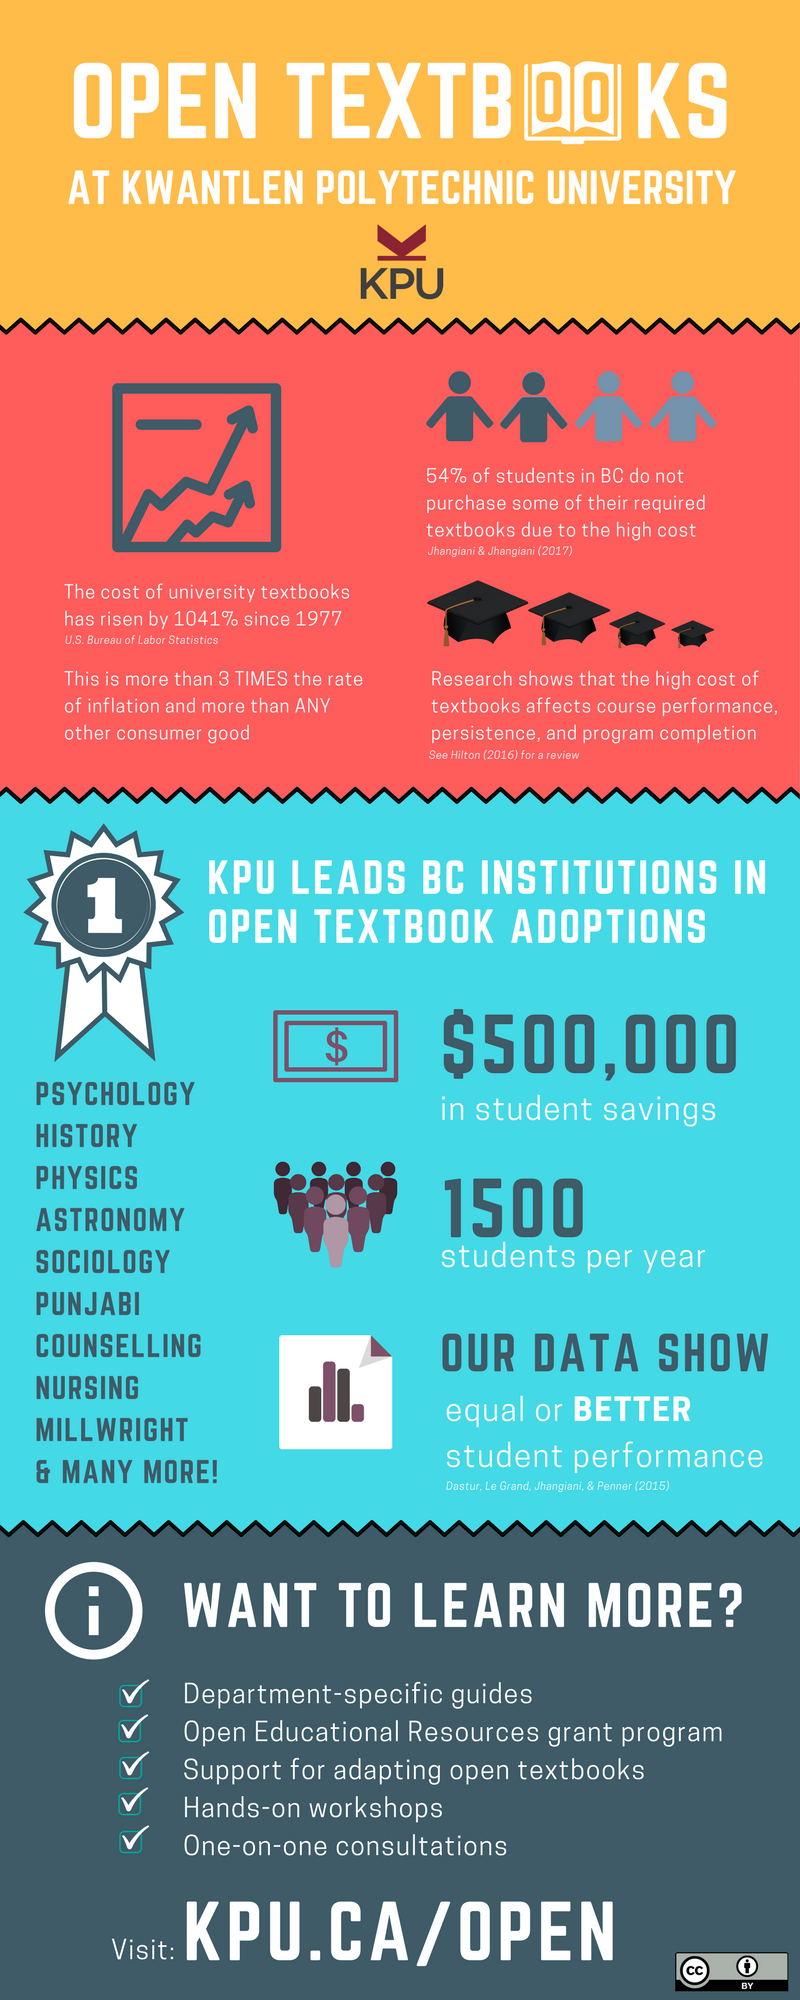 An infographic about KPU's open textbook initiative